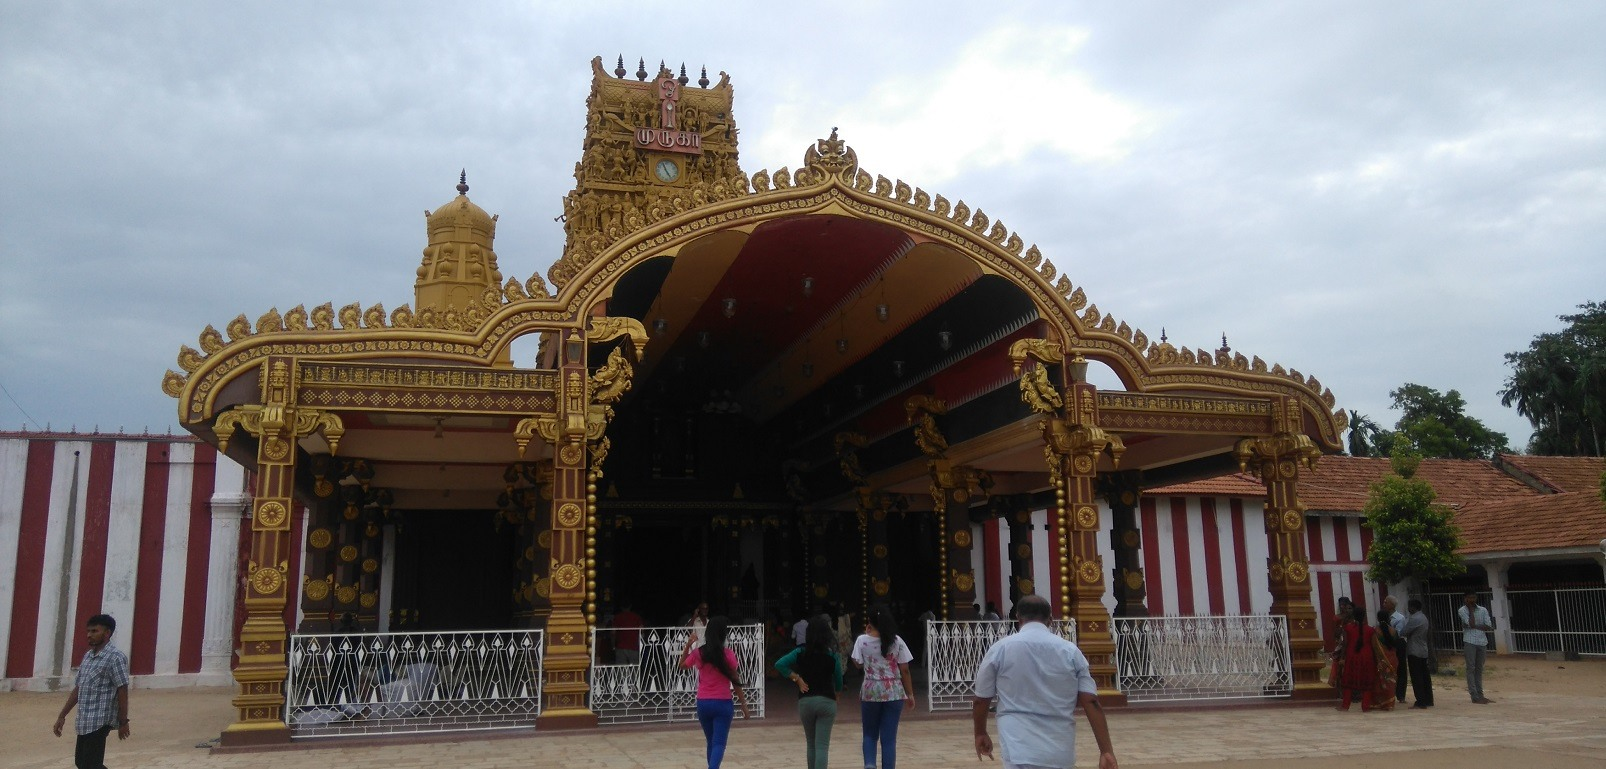 Trip Vietnam Blog Exclusive Travel Tips For Your Destination Jaffna In Sri Lanka